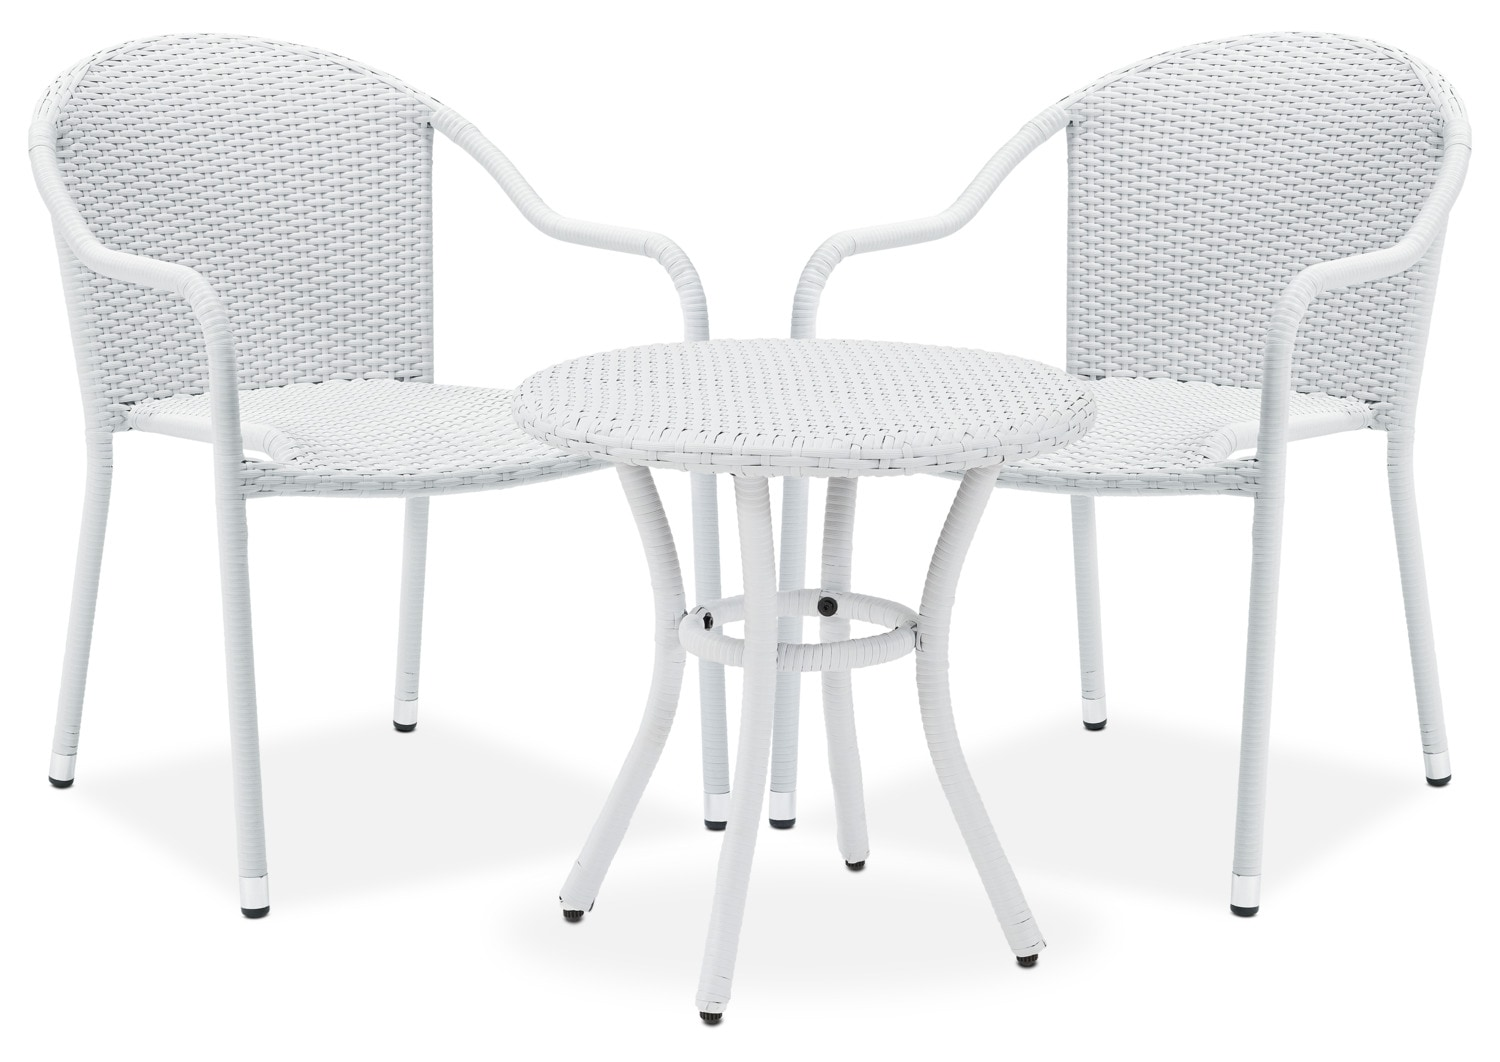 Wonderful Aldo Outdoor Café Table And 2 Arm Chairs   White Great Ideas